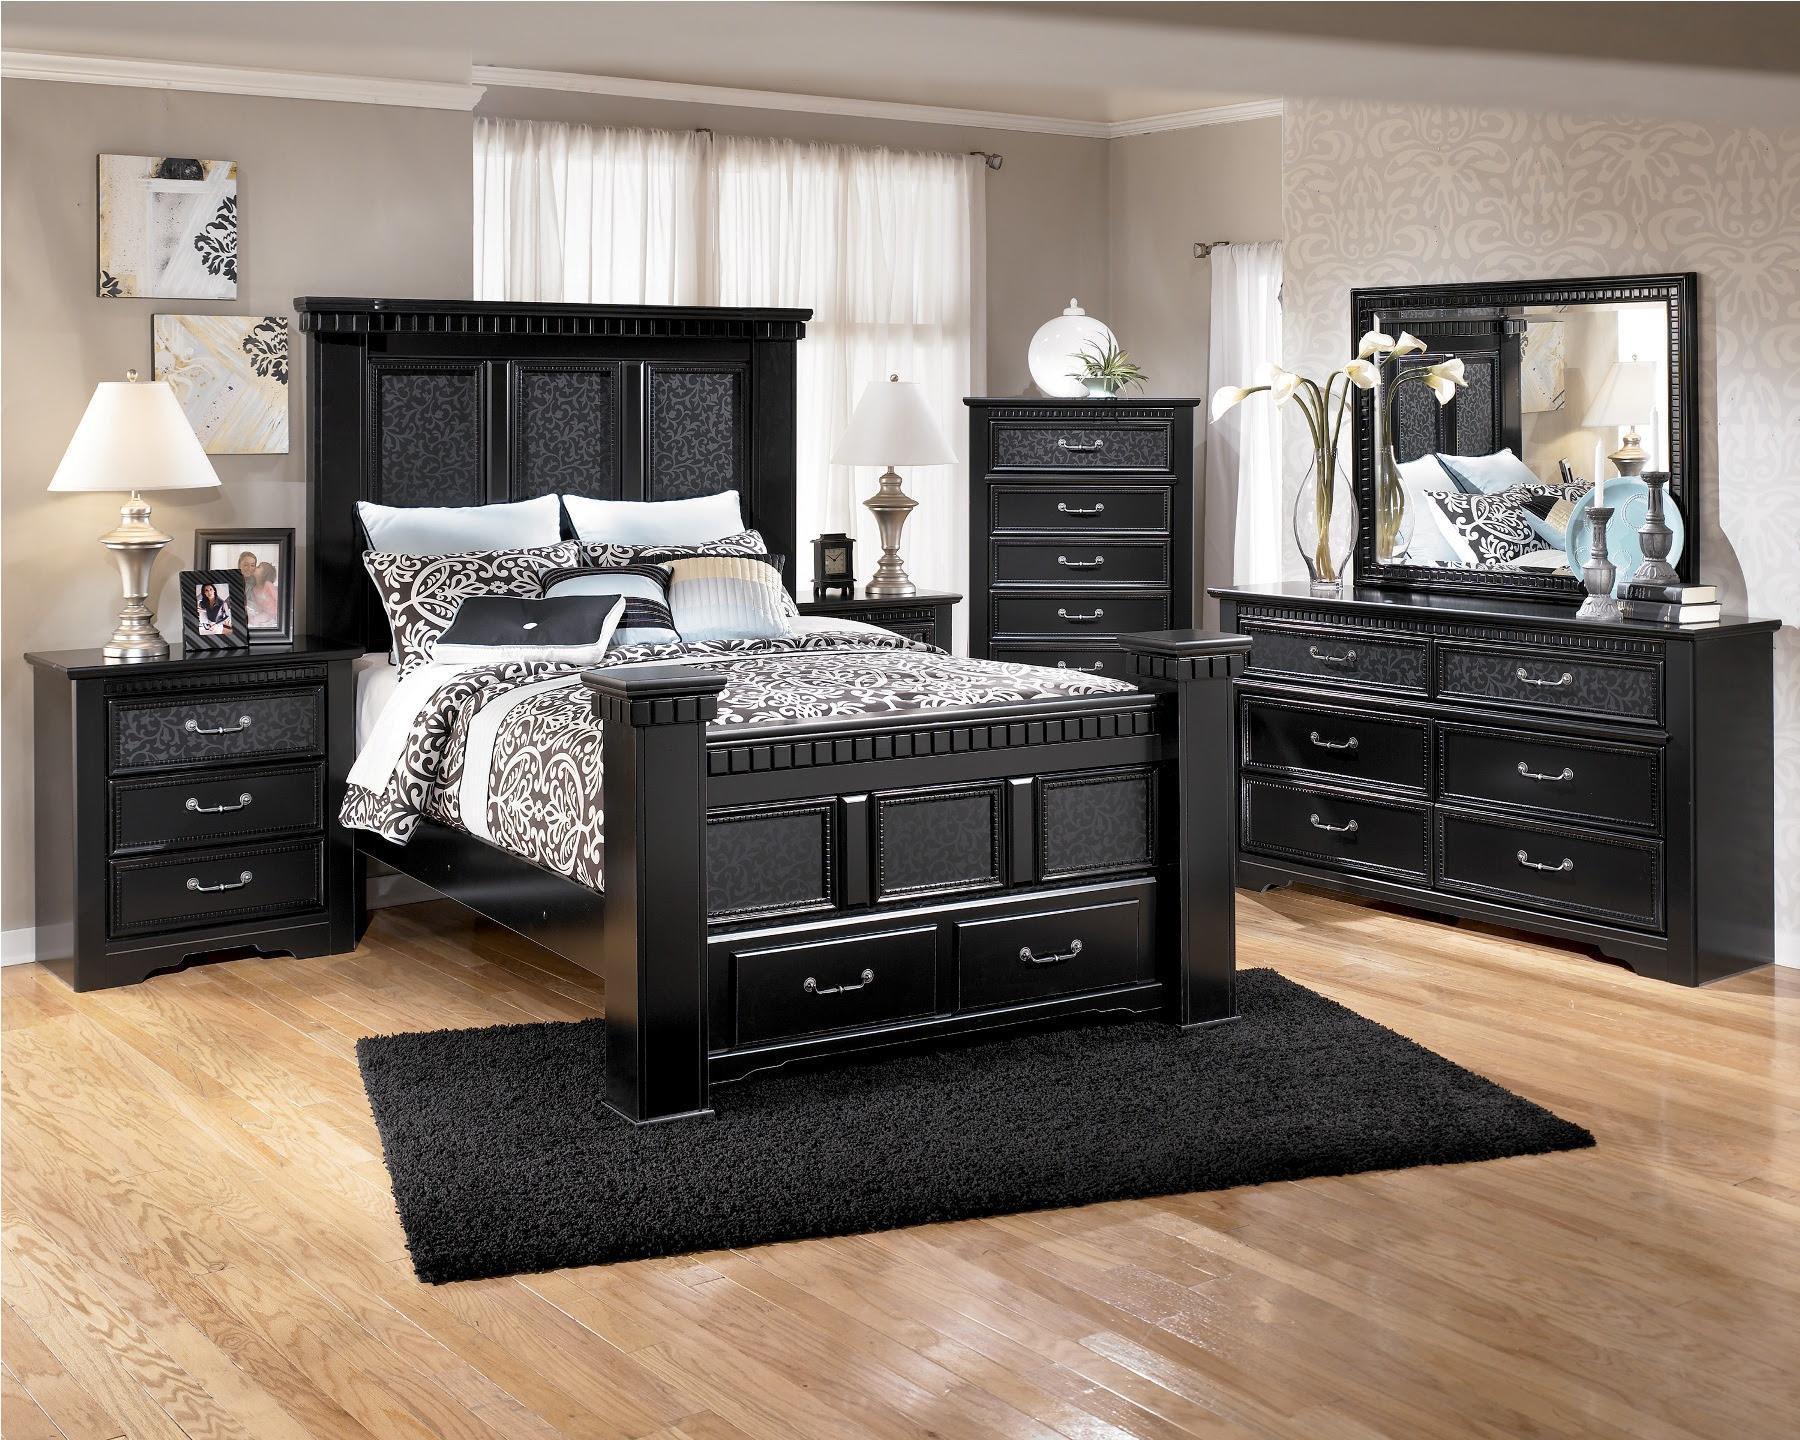 25 Bedroom Furniture Design Ideas - The WoW Style